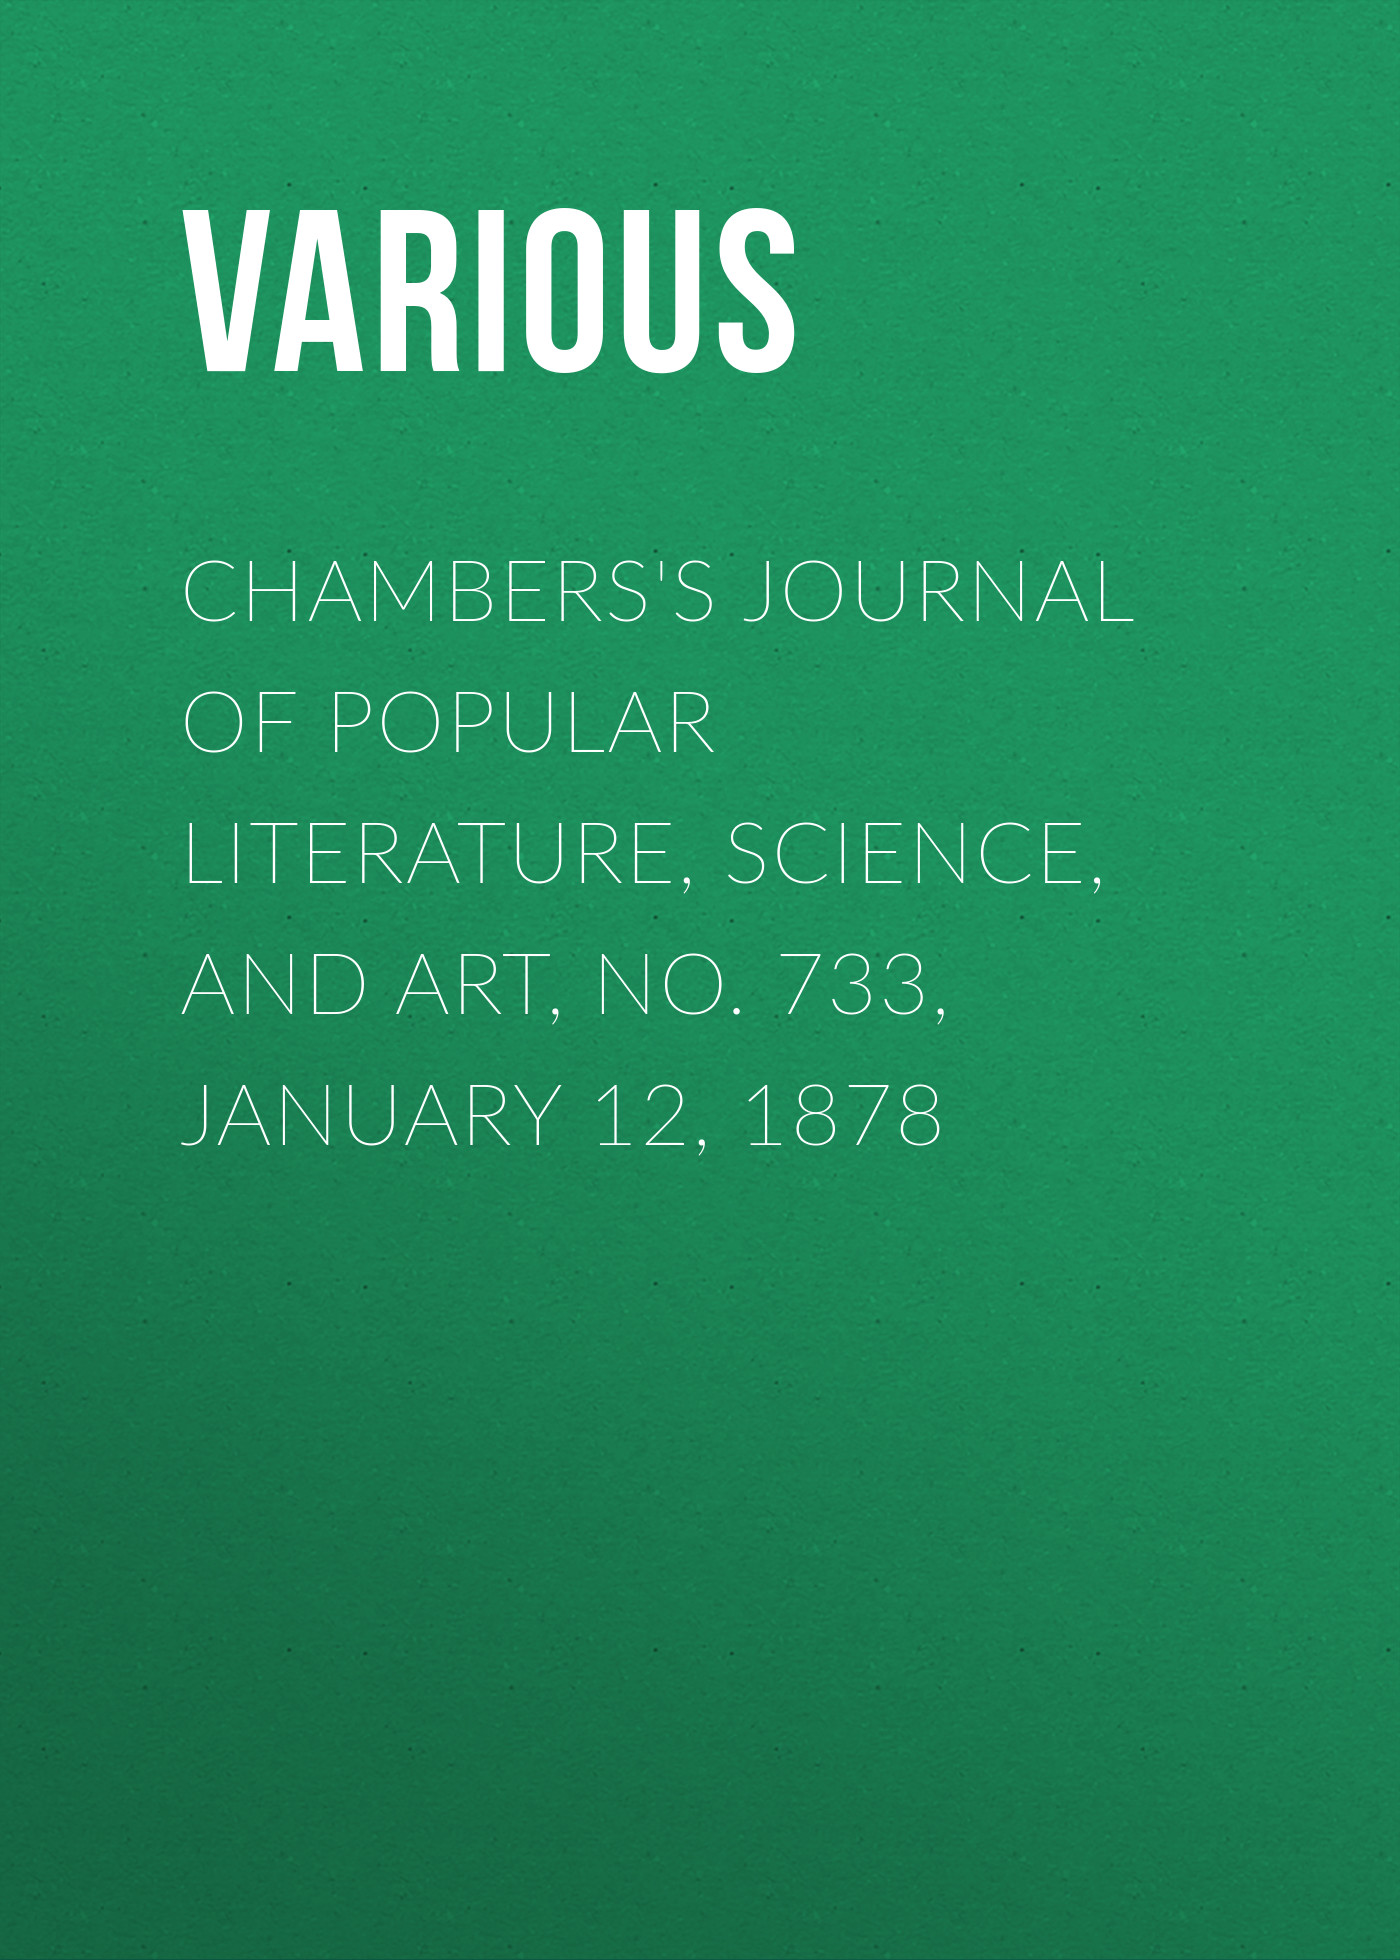 Various Chambers's Journal of Popular Literature, Science, and Art, No. 733, January 12, 1878 various chambers s journal of popular literature science and art no 699